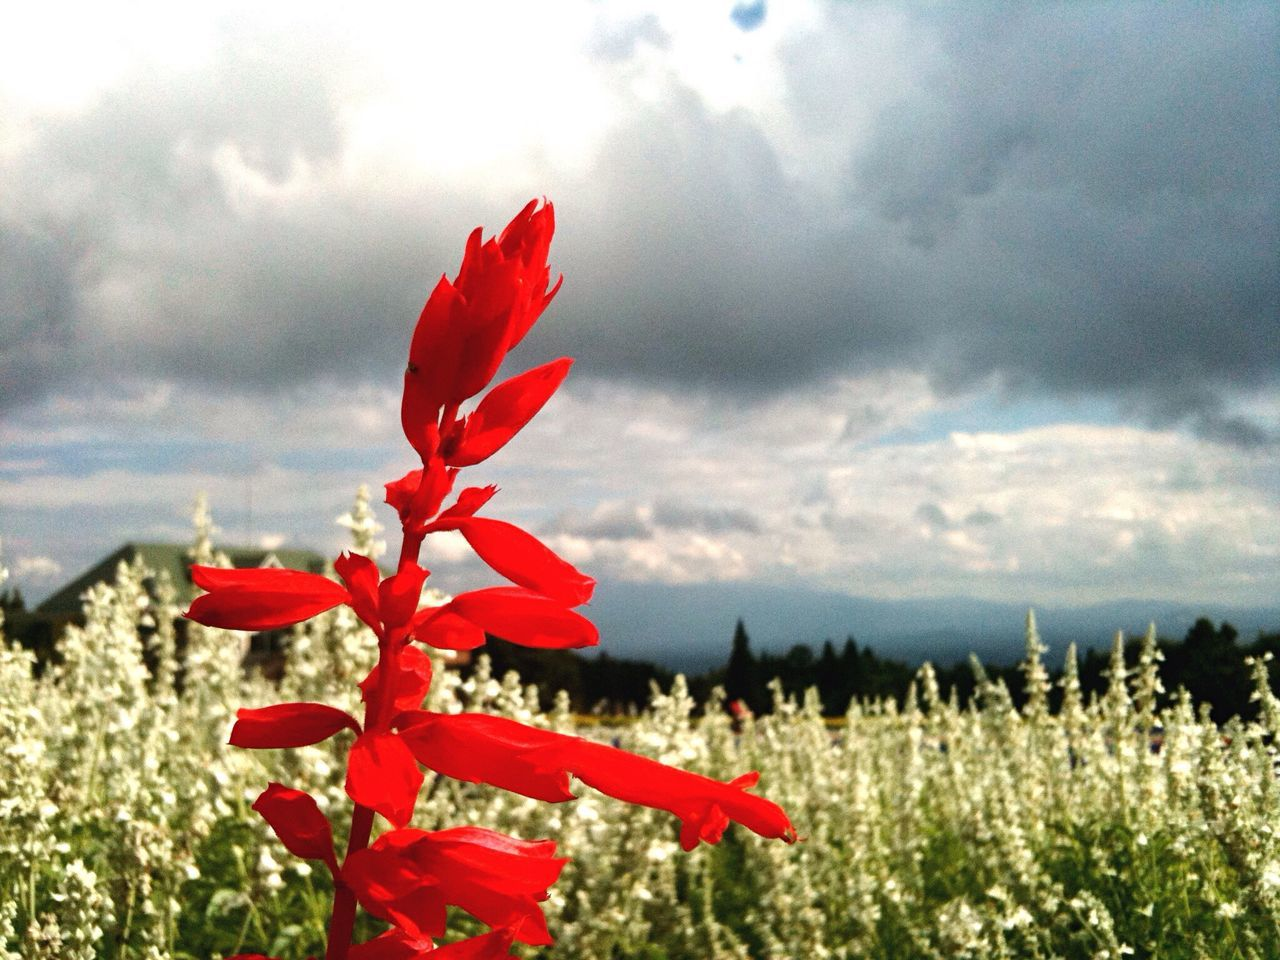 growth, flower, nature, beauty in nature, plant, fragility, petal, sky, red, field, day, cloud - sky, outdoors, no people, blooming, freshness, poppy, tranquility, flower head, scenics, close-up